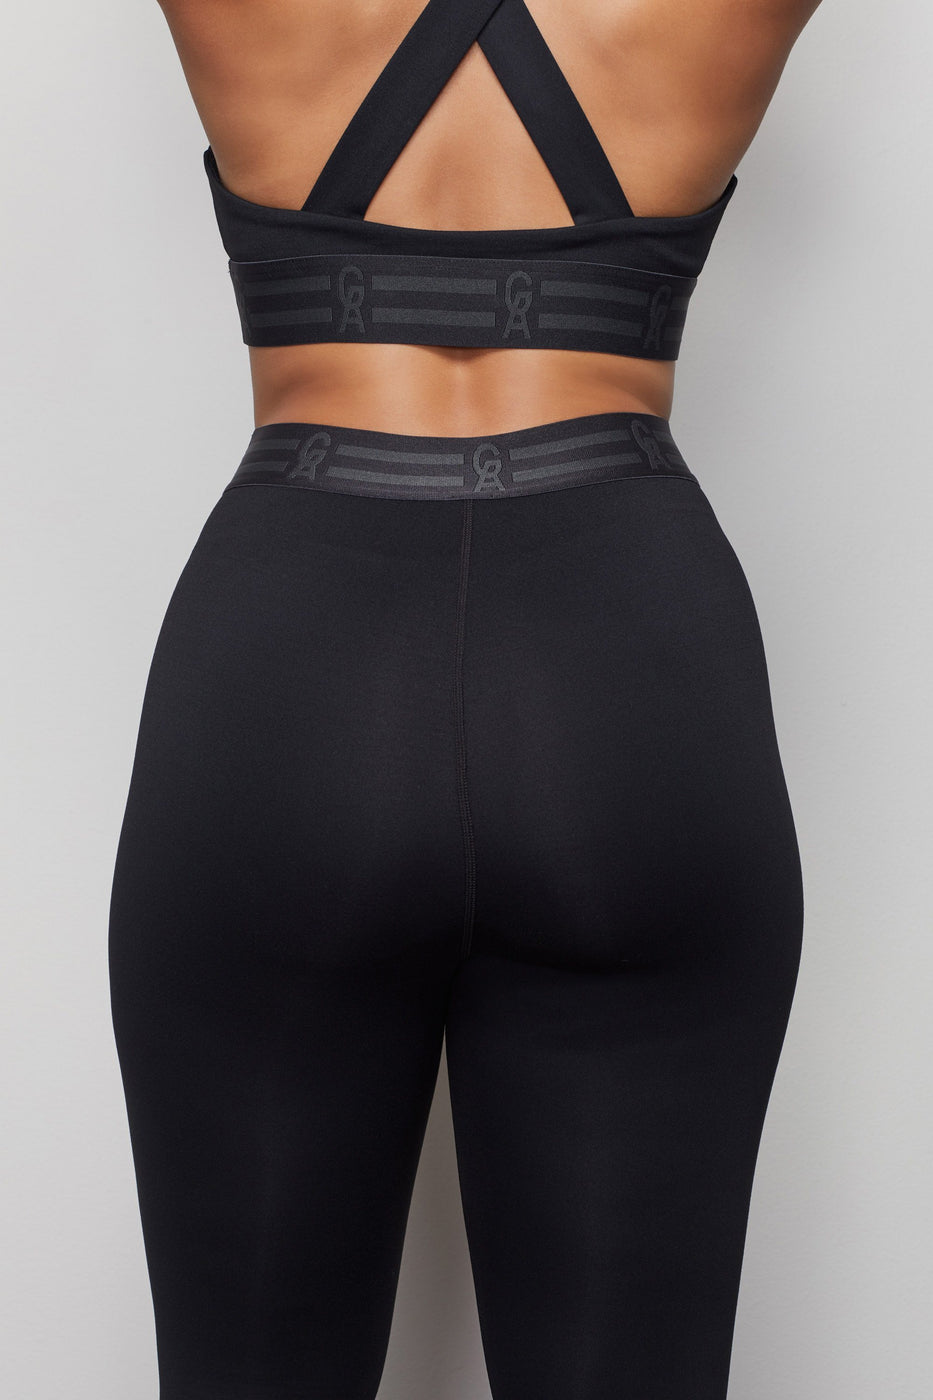 THE ICON CAPRI LEGGING | BLACK001